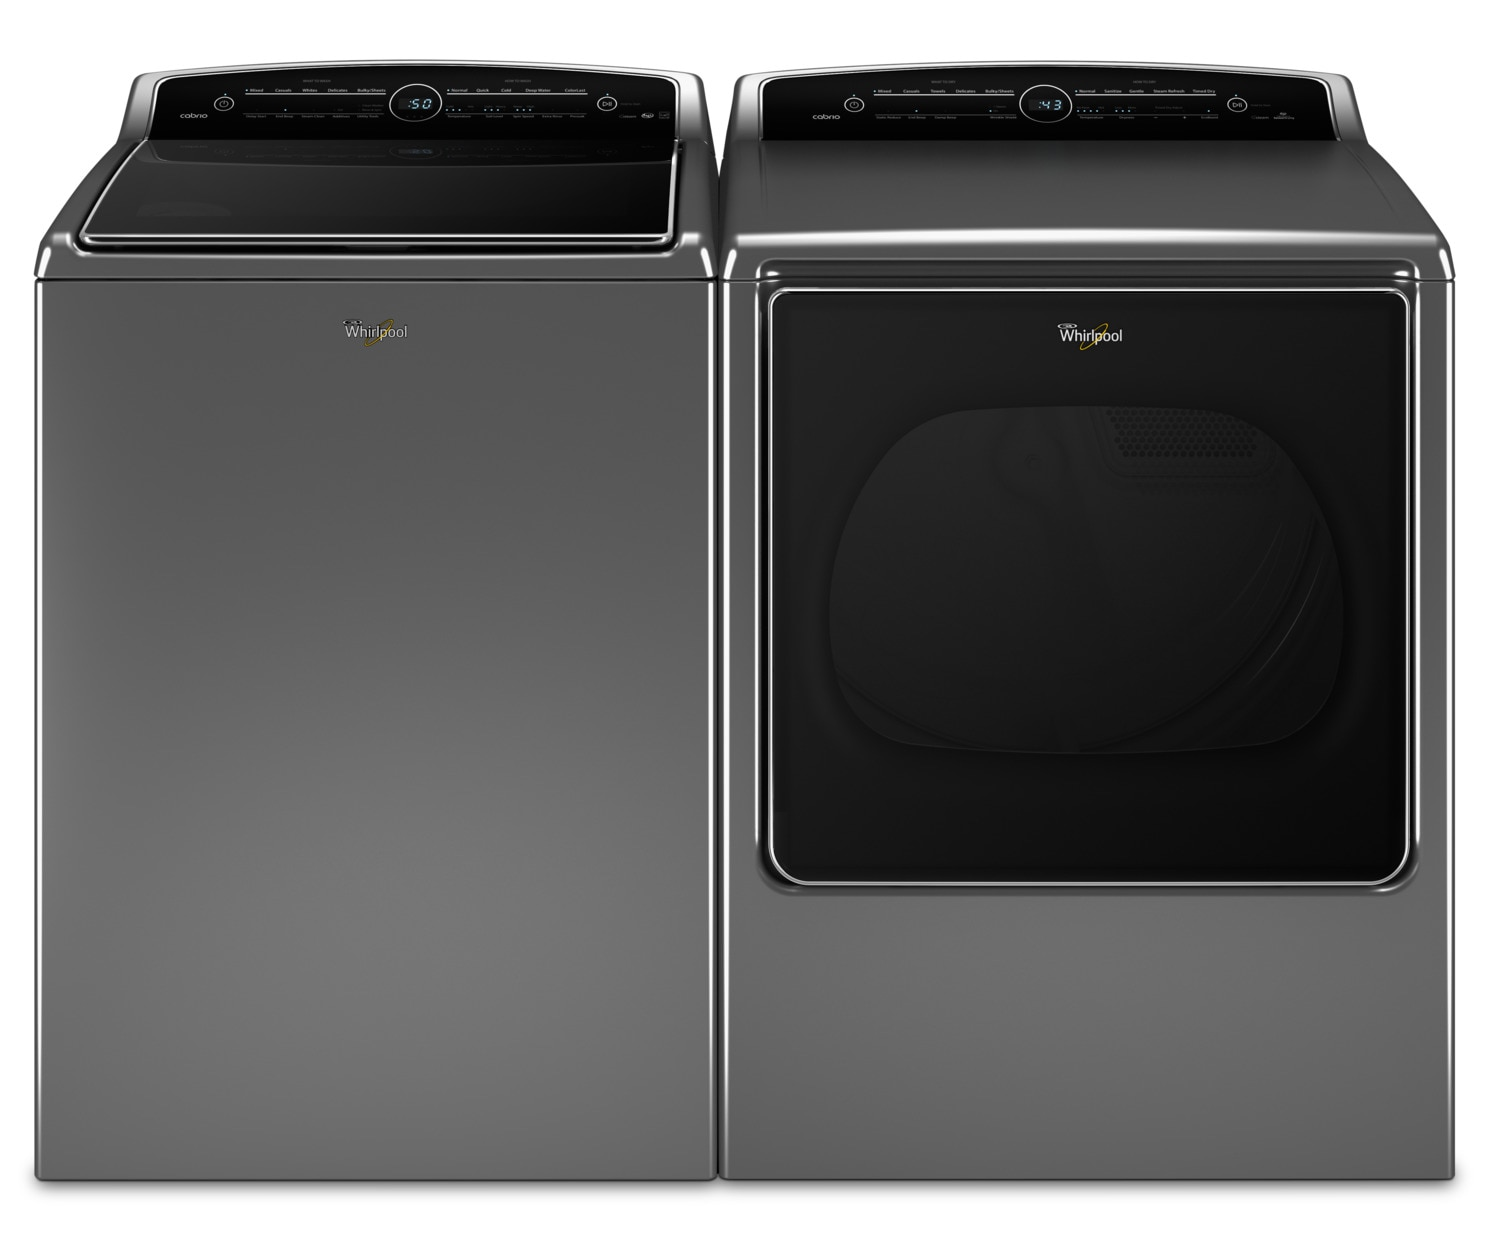 Whirlpool 6.1 Cu. Ft. Top-Load Washer and 8.8 Cu. Ft. Electric Steam Dryer